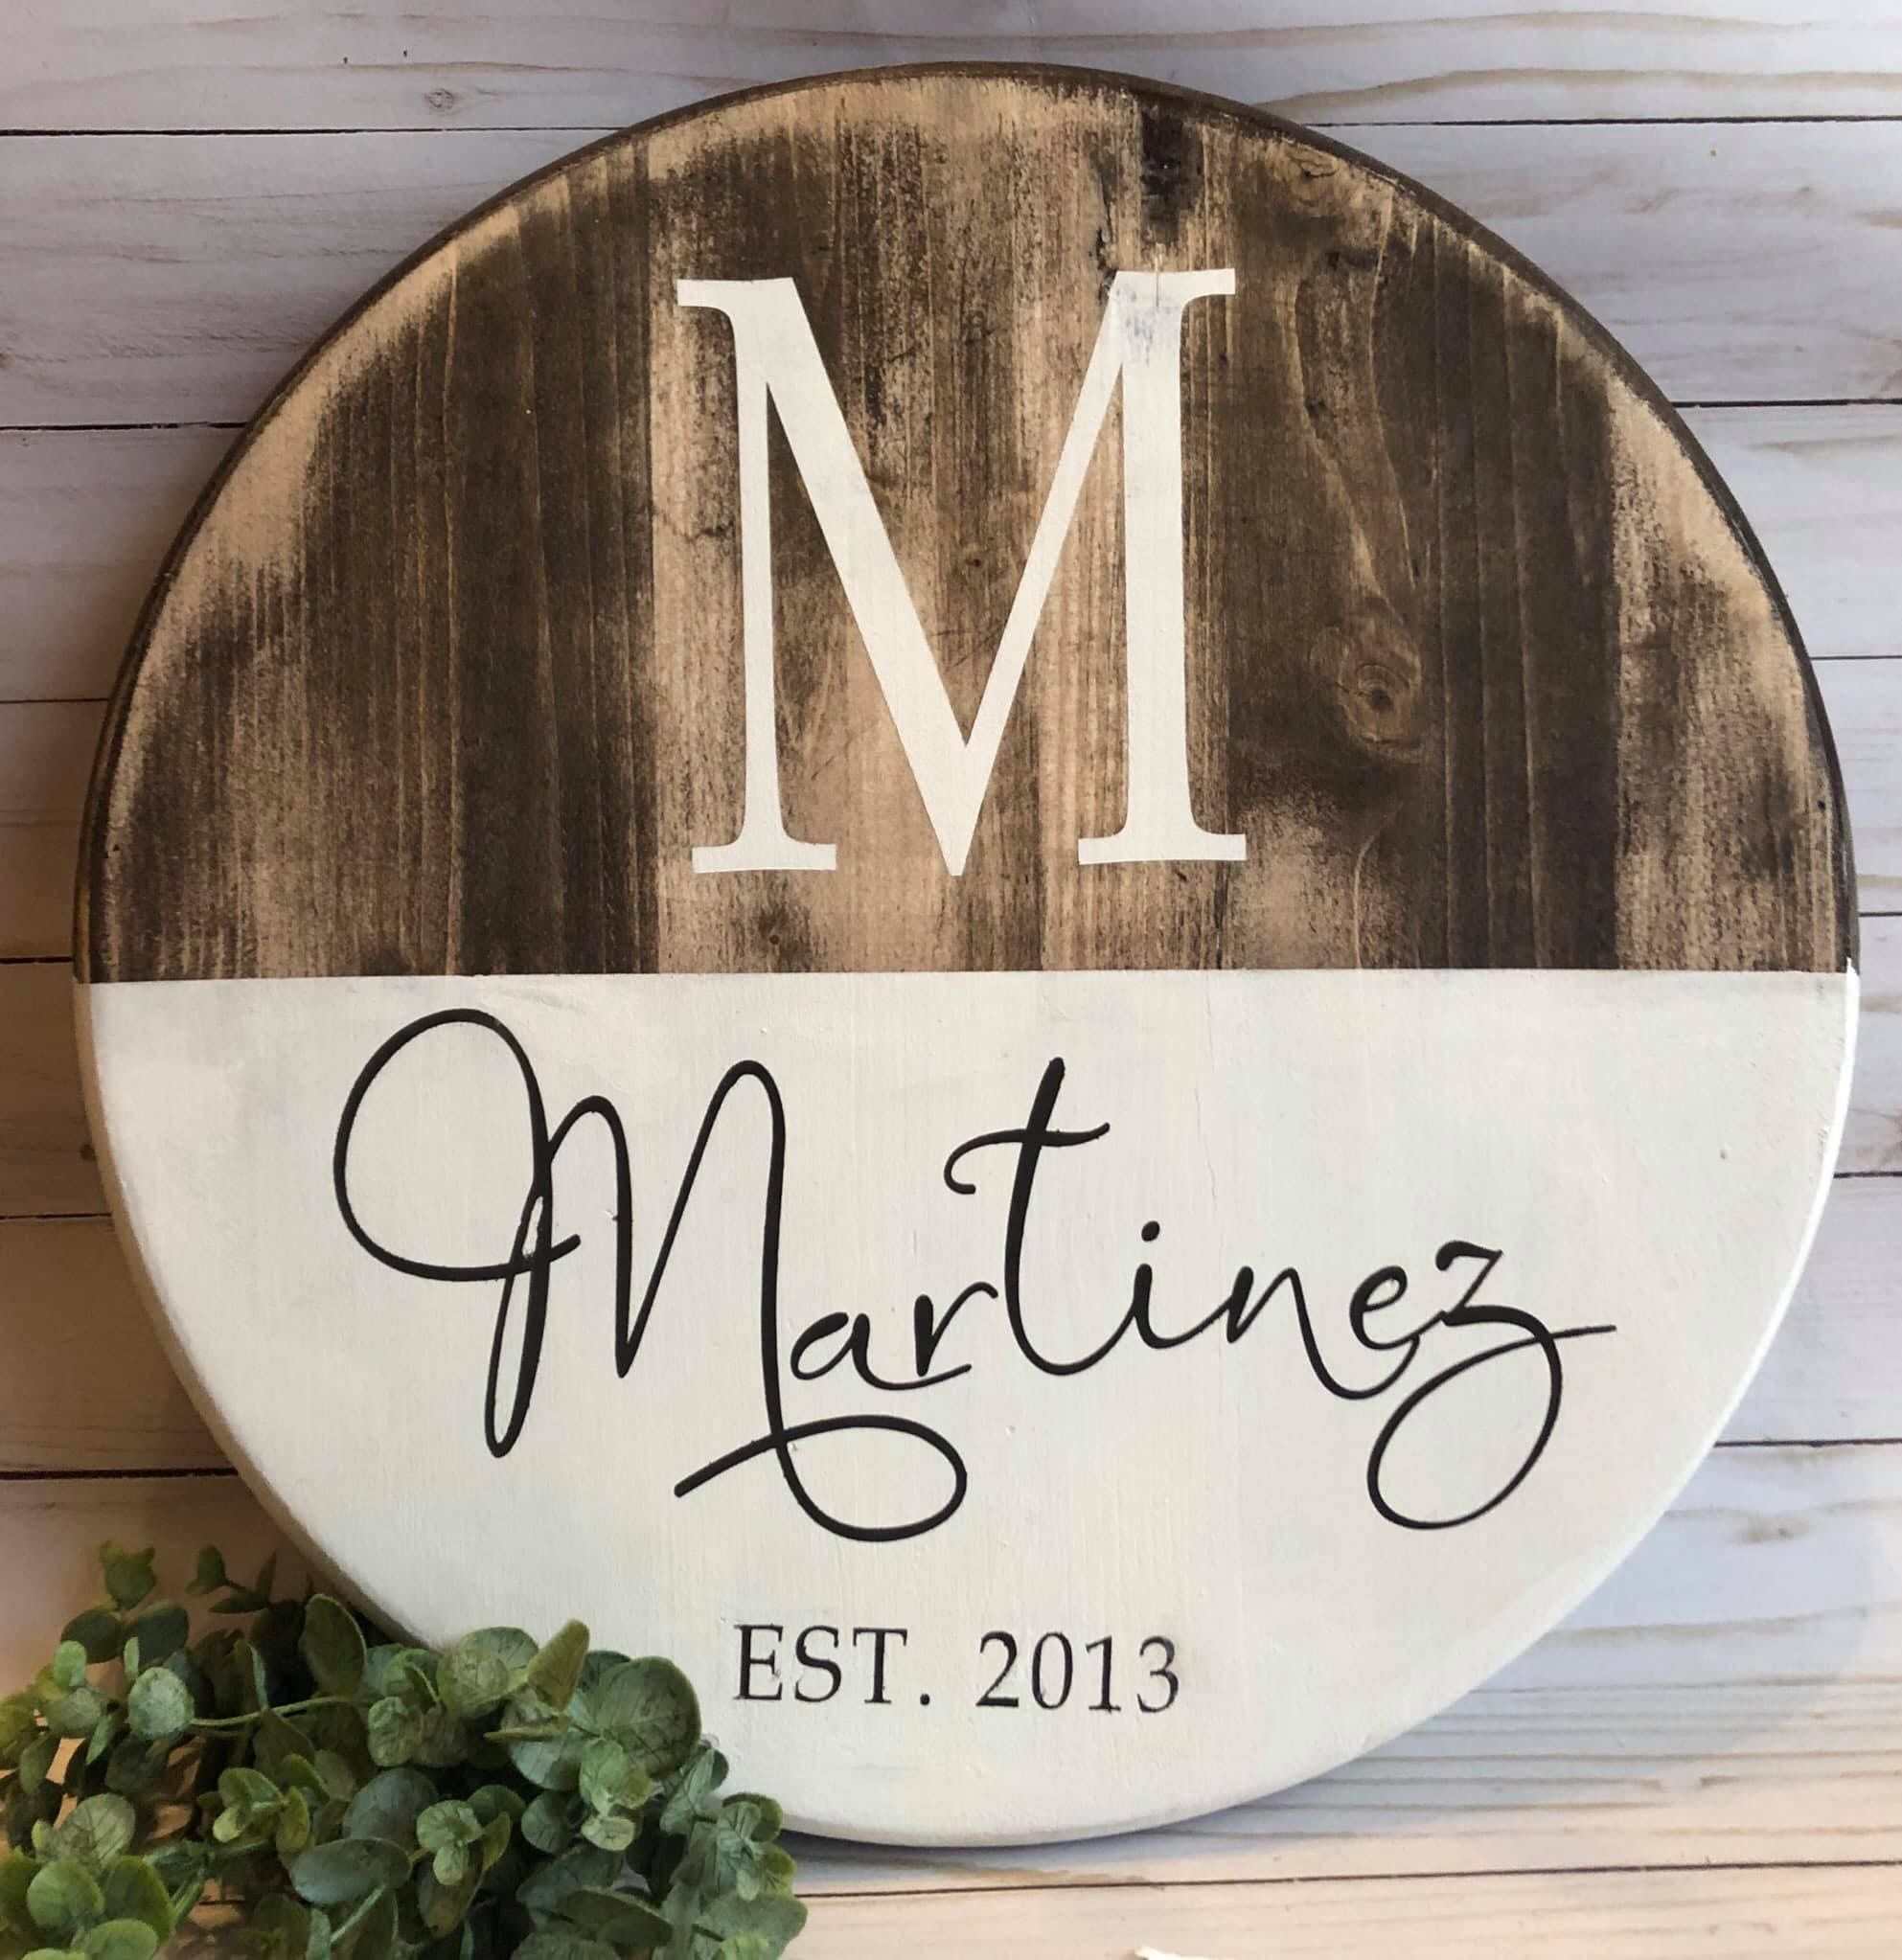 Pin By Kristie Stiles On Cricut Fun Wooden Family Signs Diy Wood Signs Wooden Signs